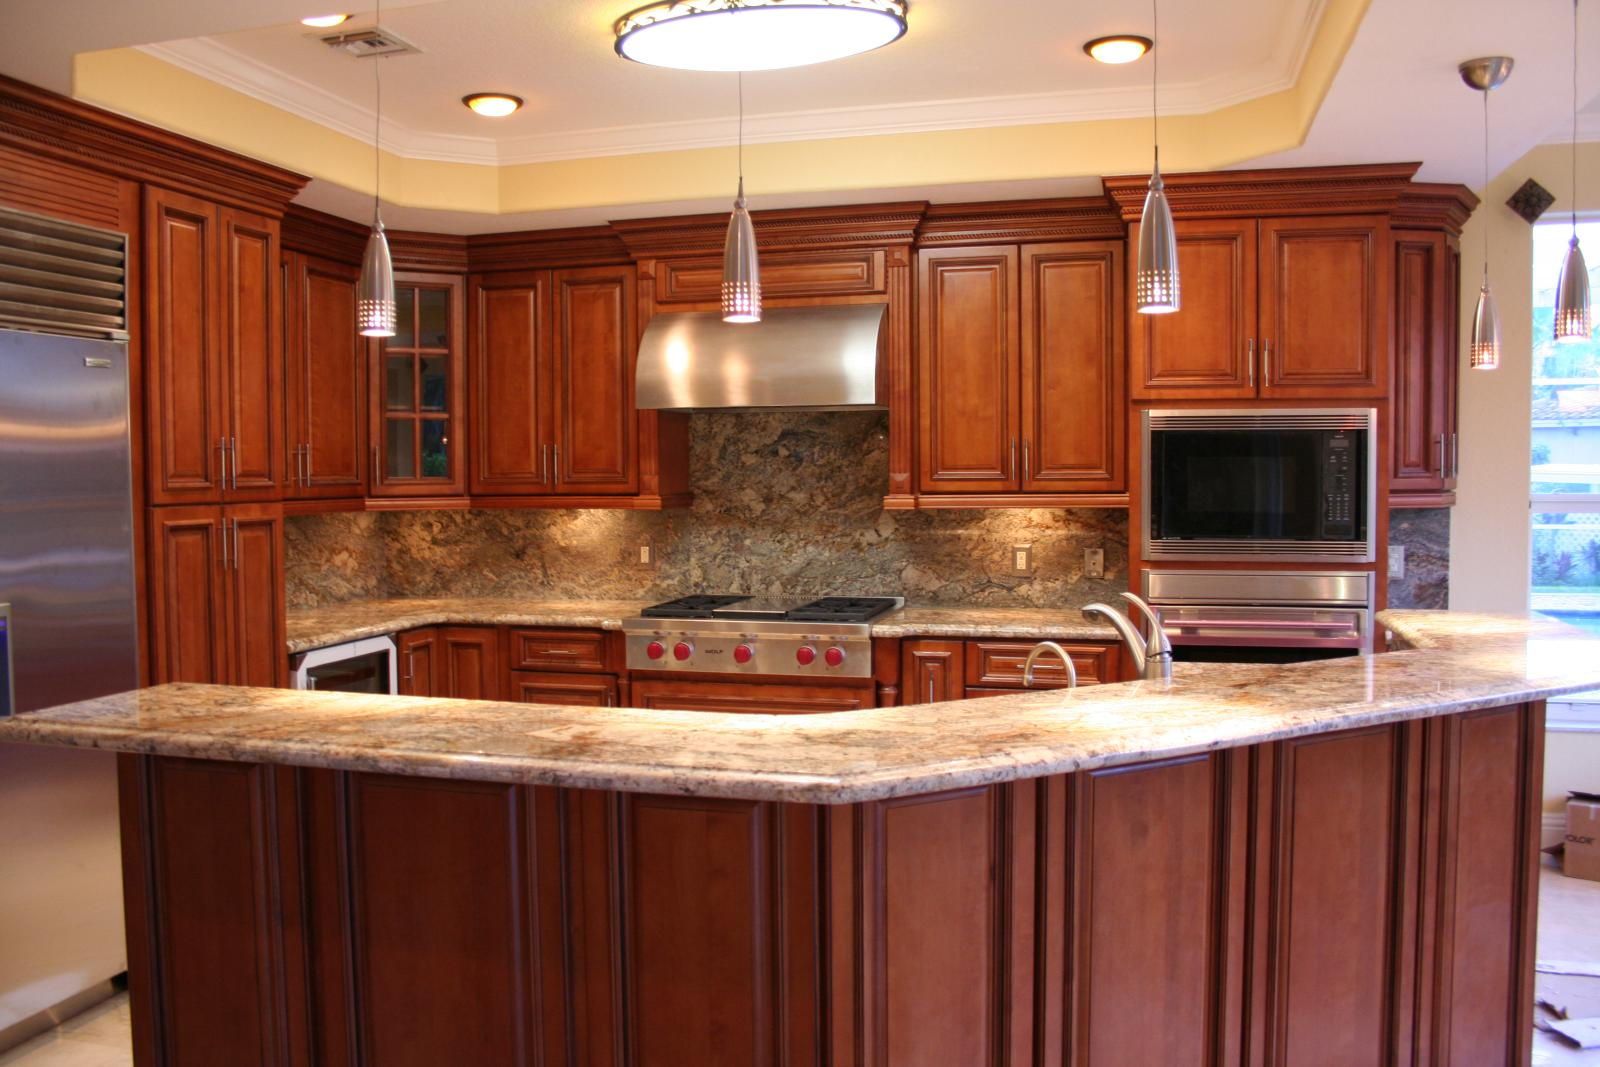 Genial Cambridge Glazed Cabinet Gallery | Denver Cabinetry | Stone International  Cabinets U0026 Countertops